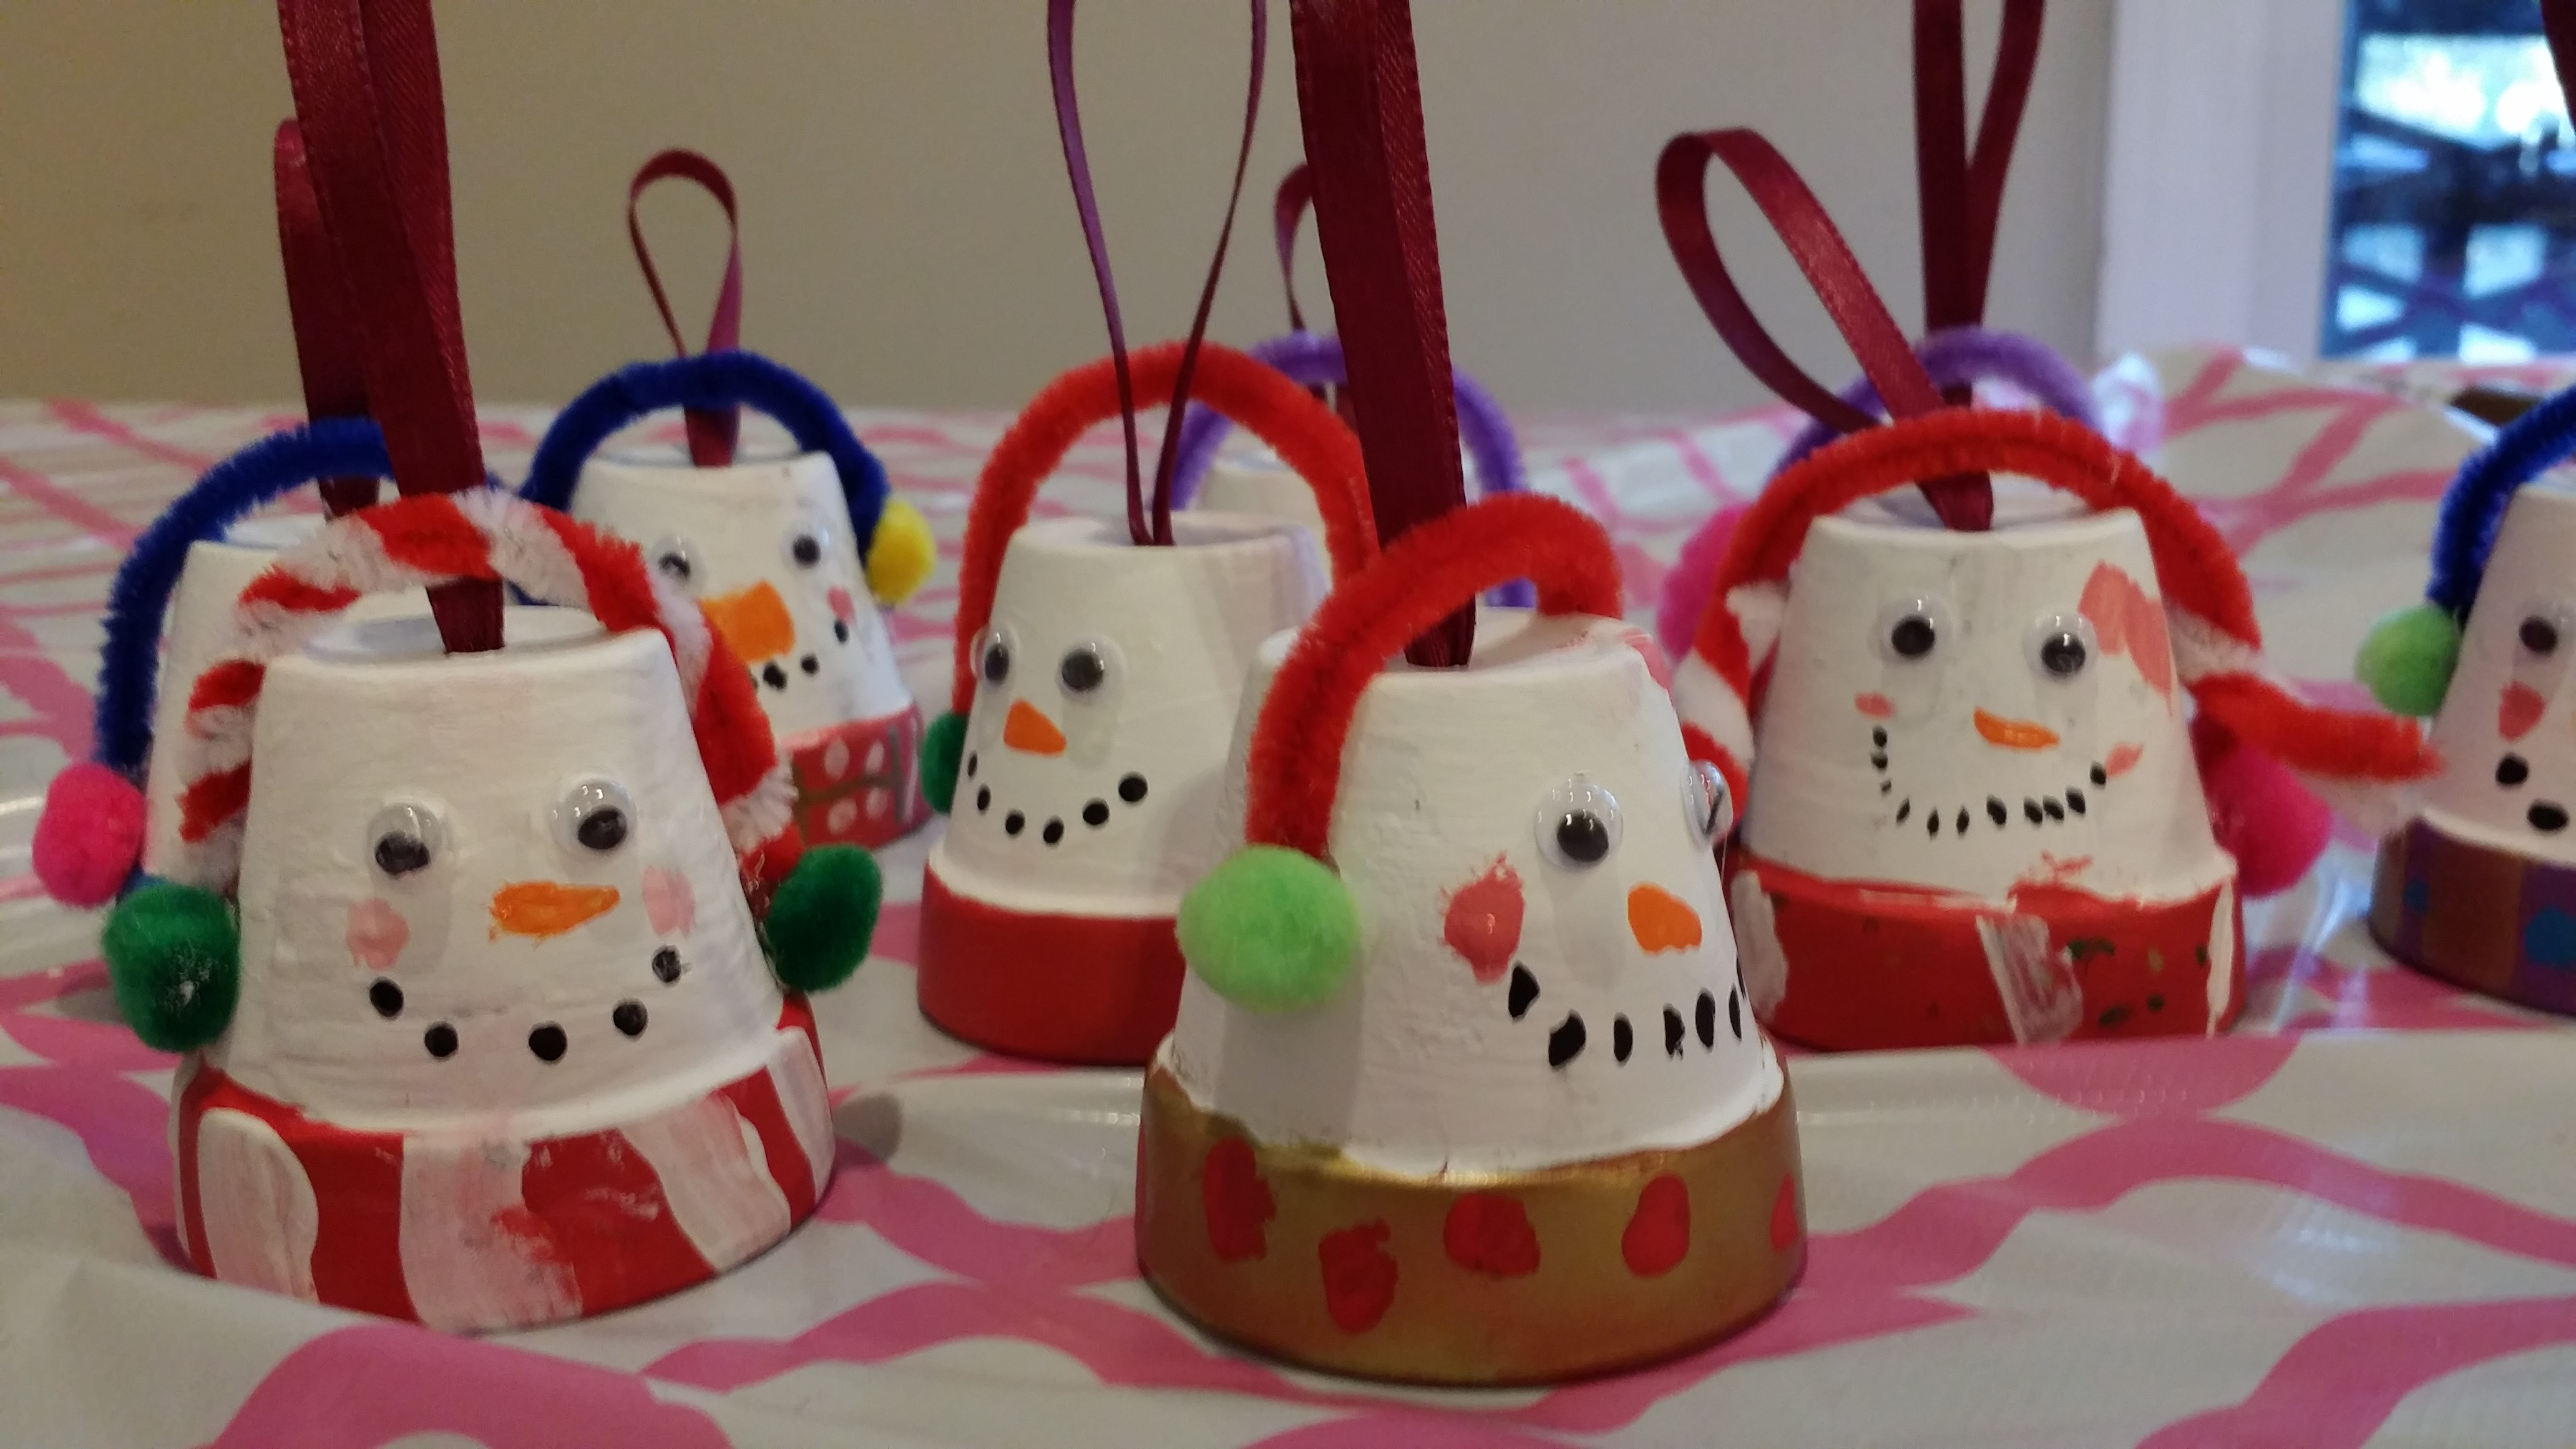 Just a few of the beautiful ornaments hand crafted by our swimmers!